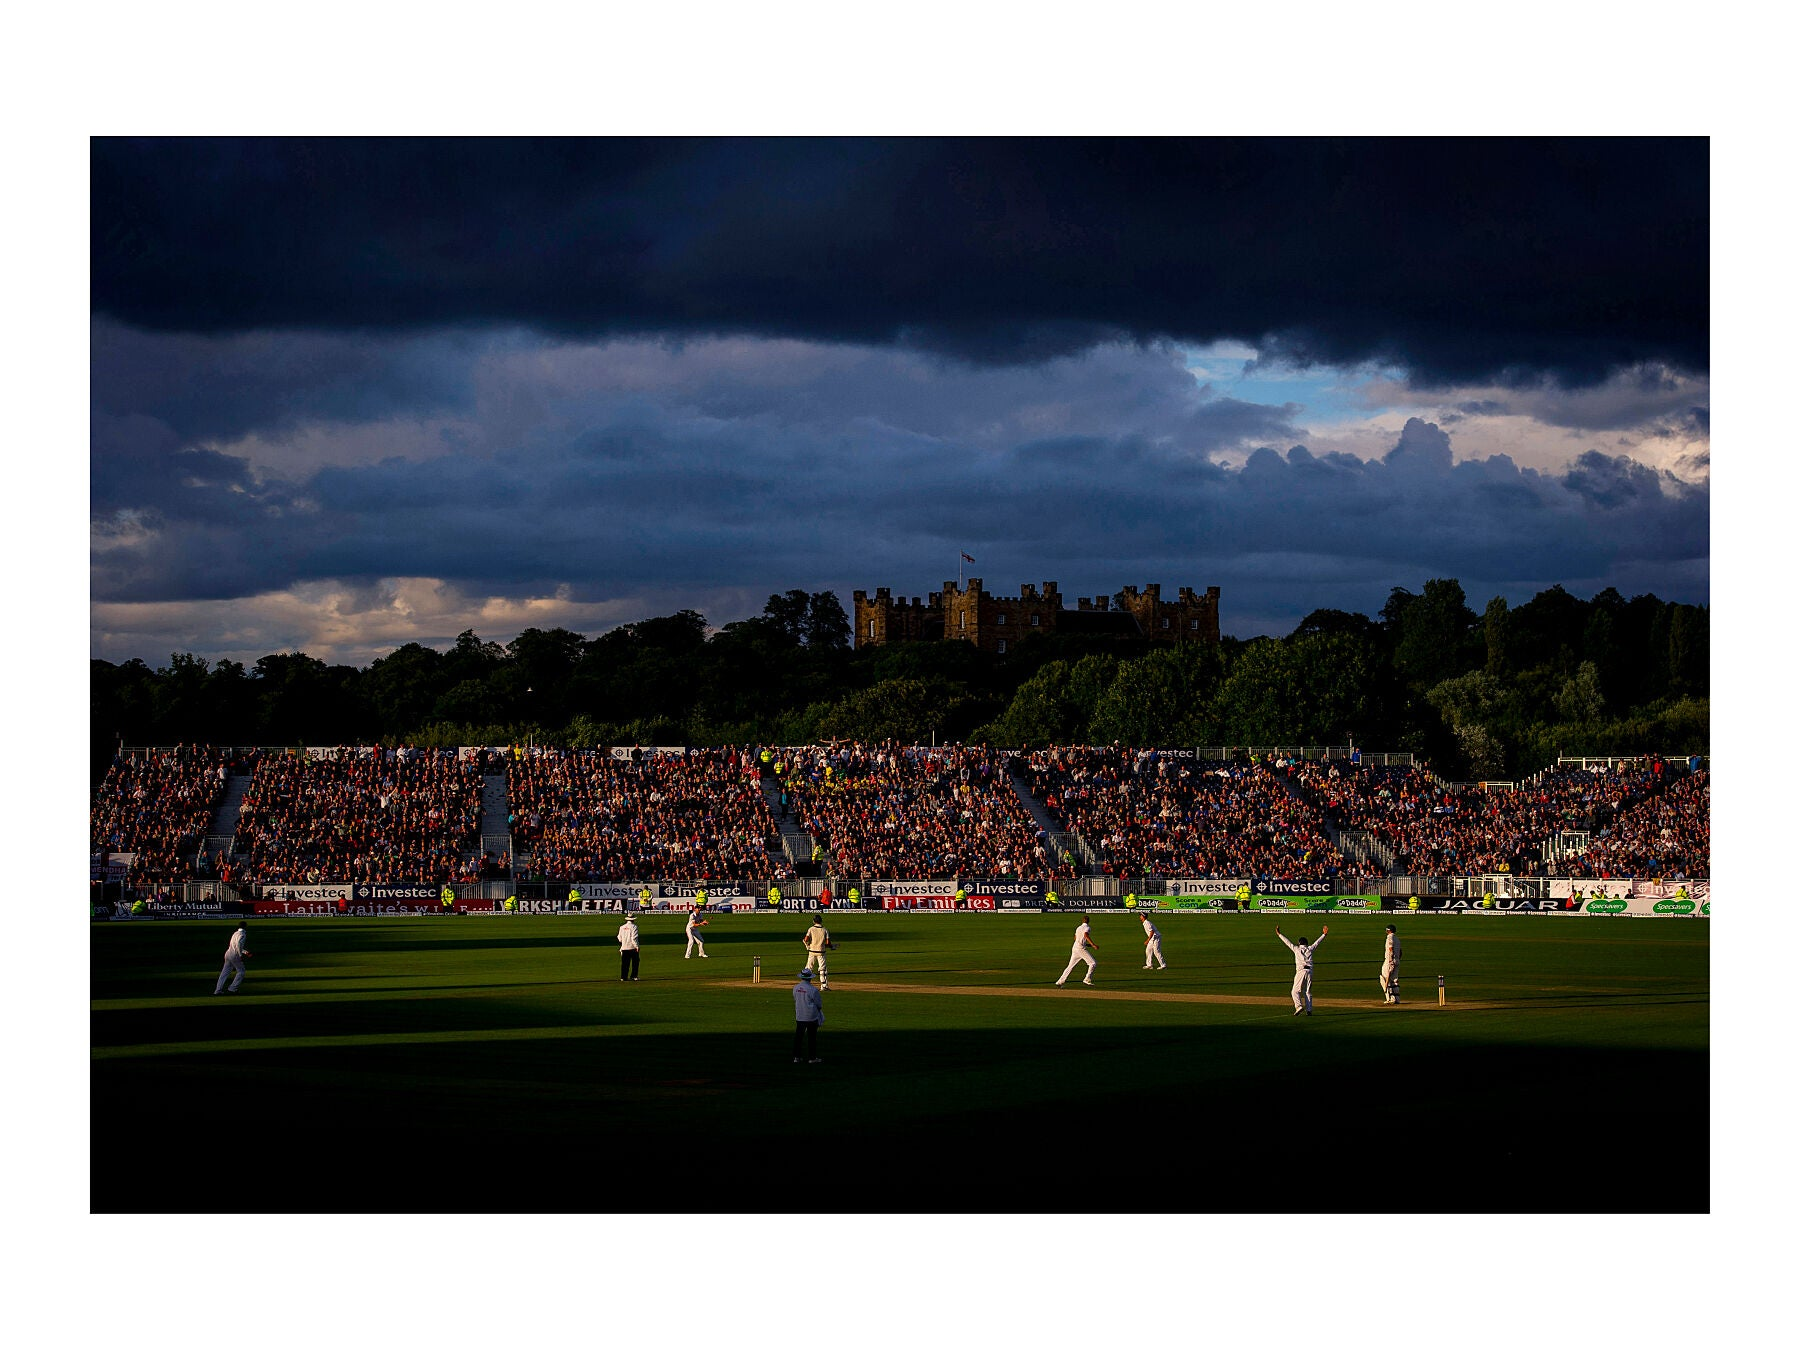 England win the Ashes, Durham – 12 August 2013